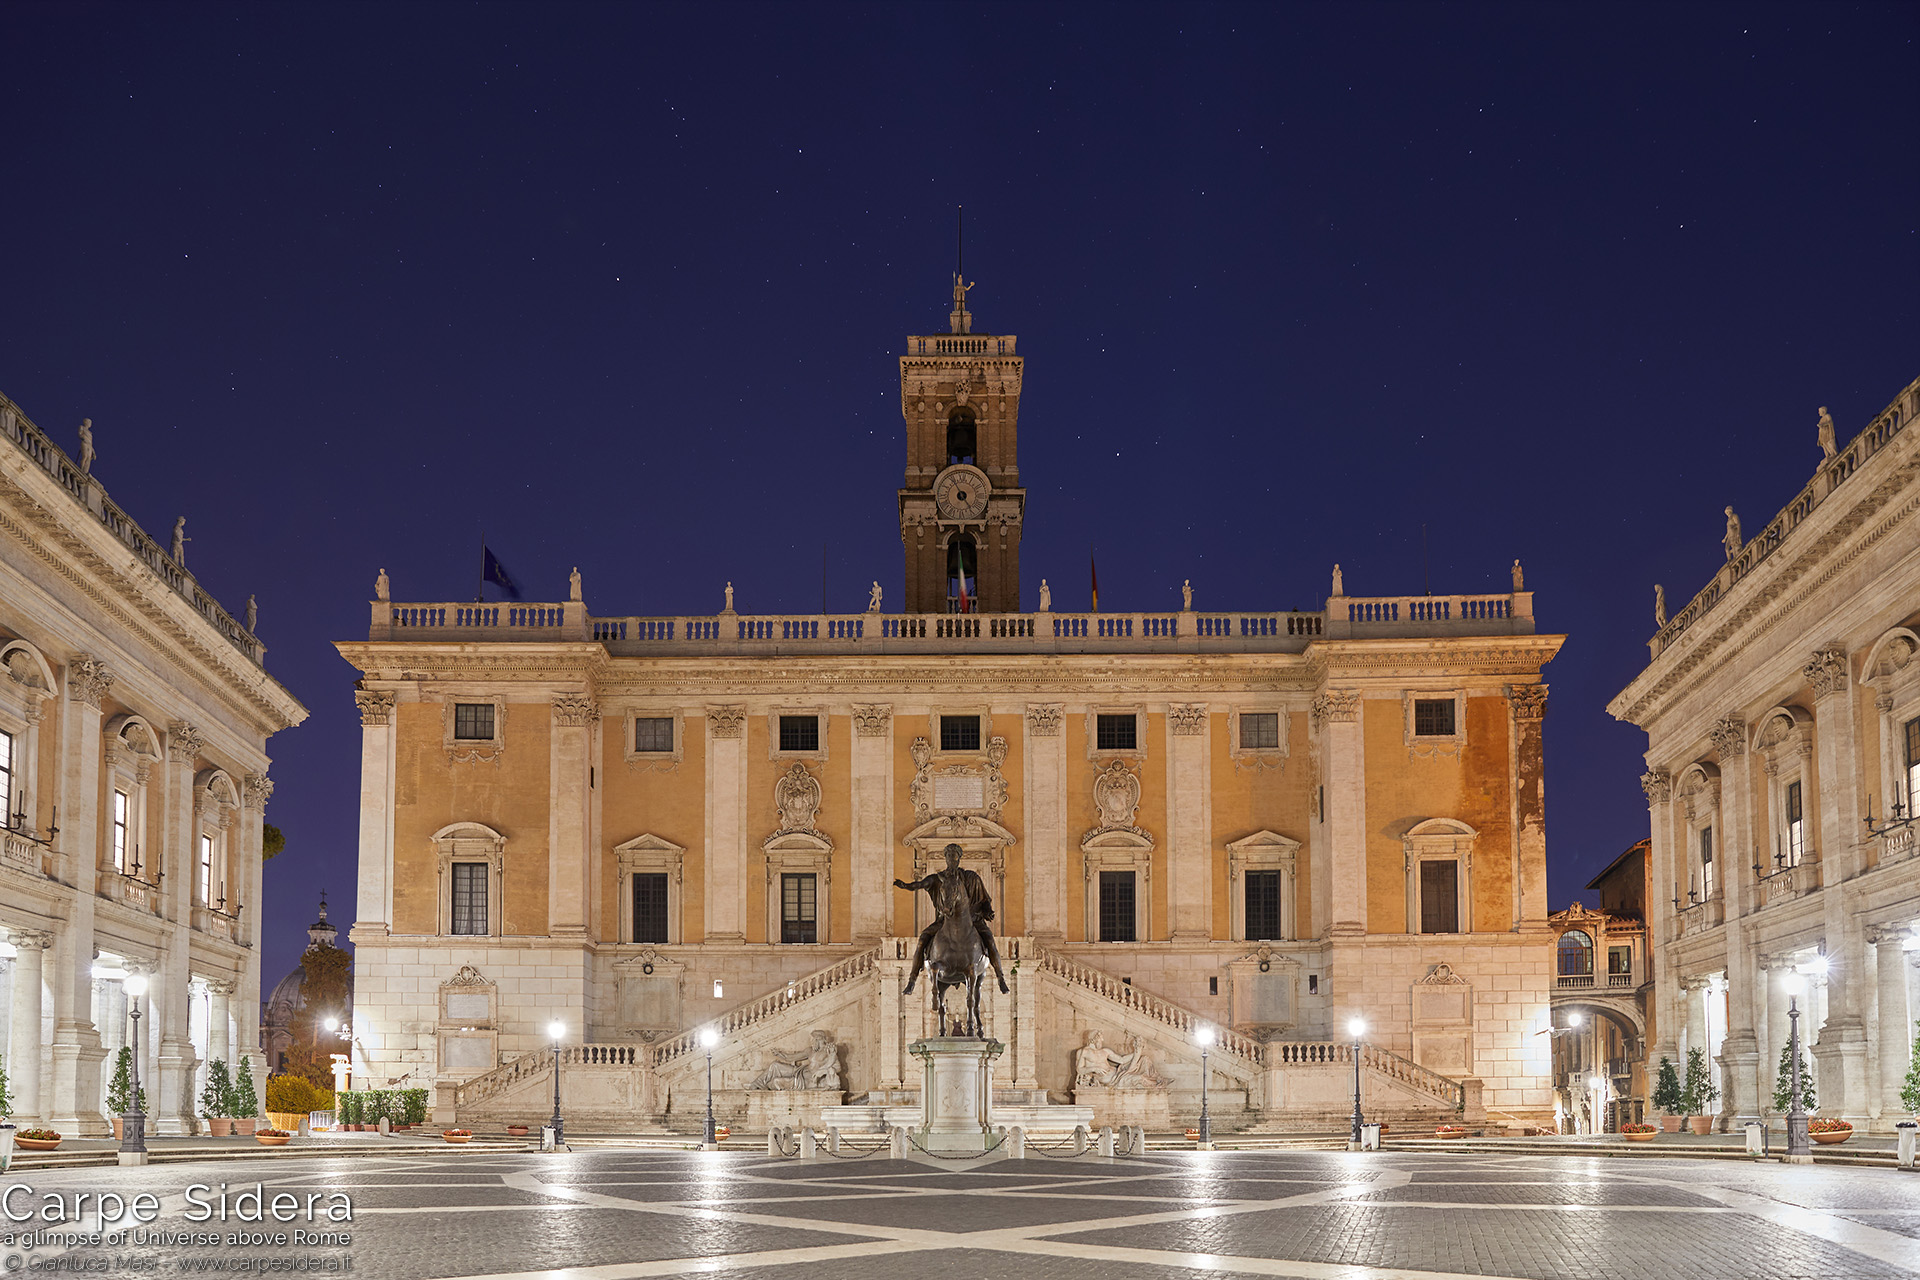 3. The Orion constellations rises behind the Palazzo Senatorio.